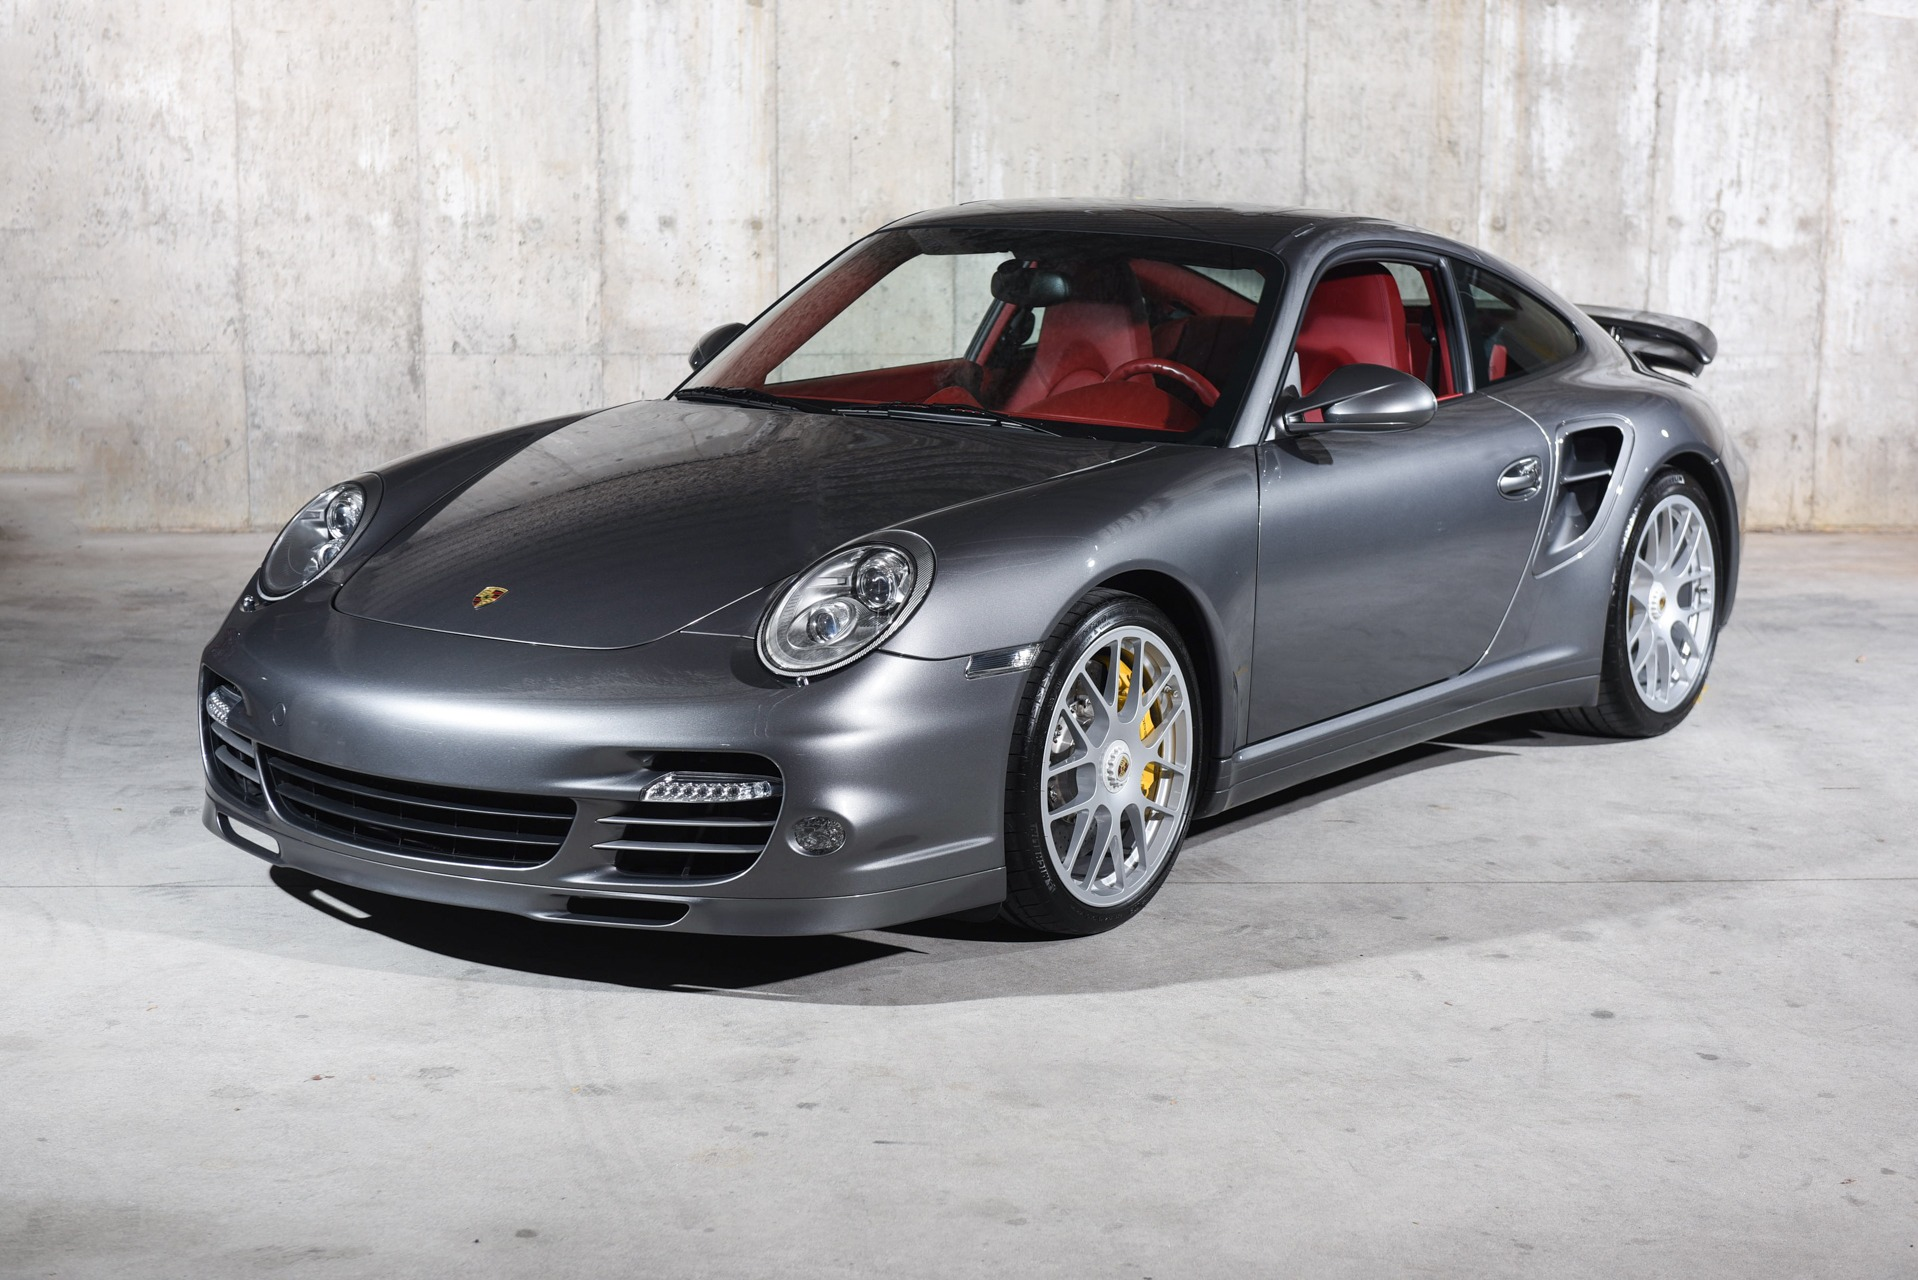 262c85864ca Buyer s guide - The Porsche 997 Turbo (S) - elferspot.com - Magazine